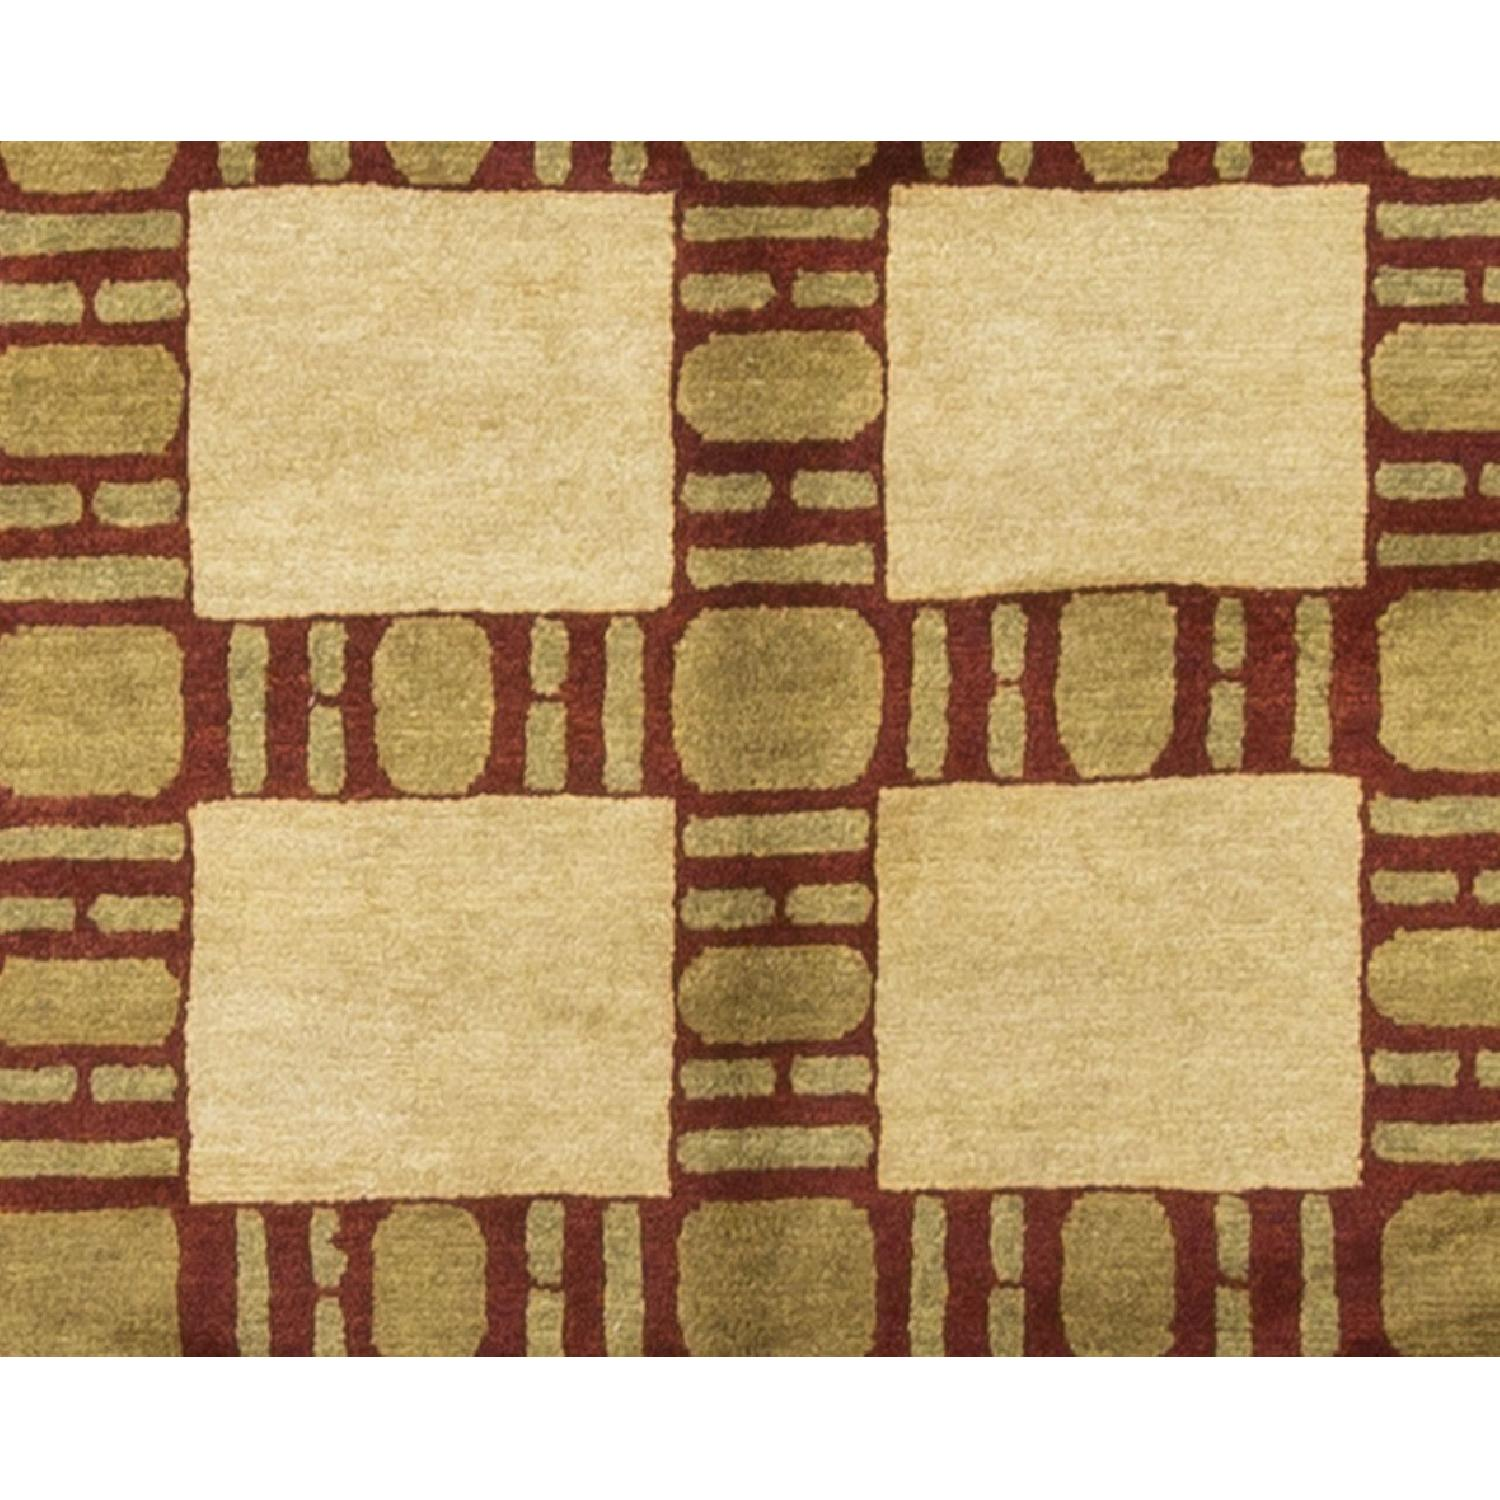 Modern Contemporary Hand Knotted Wool Rug in Beige/Brown/Red - image-2